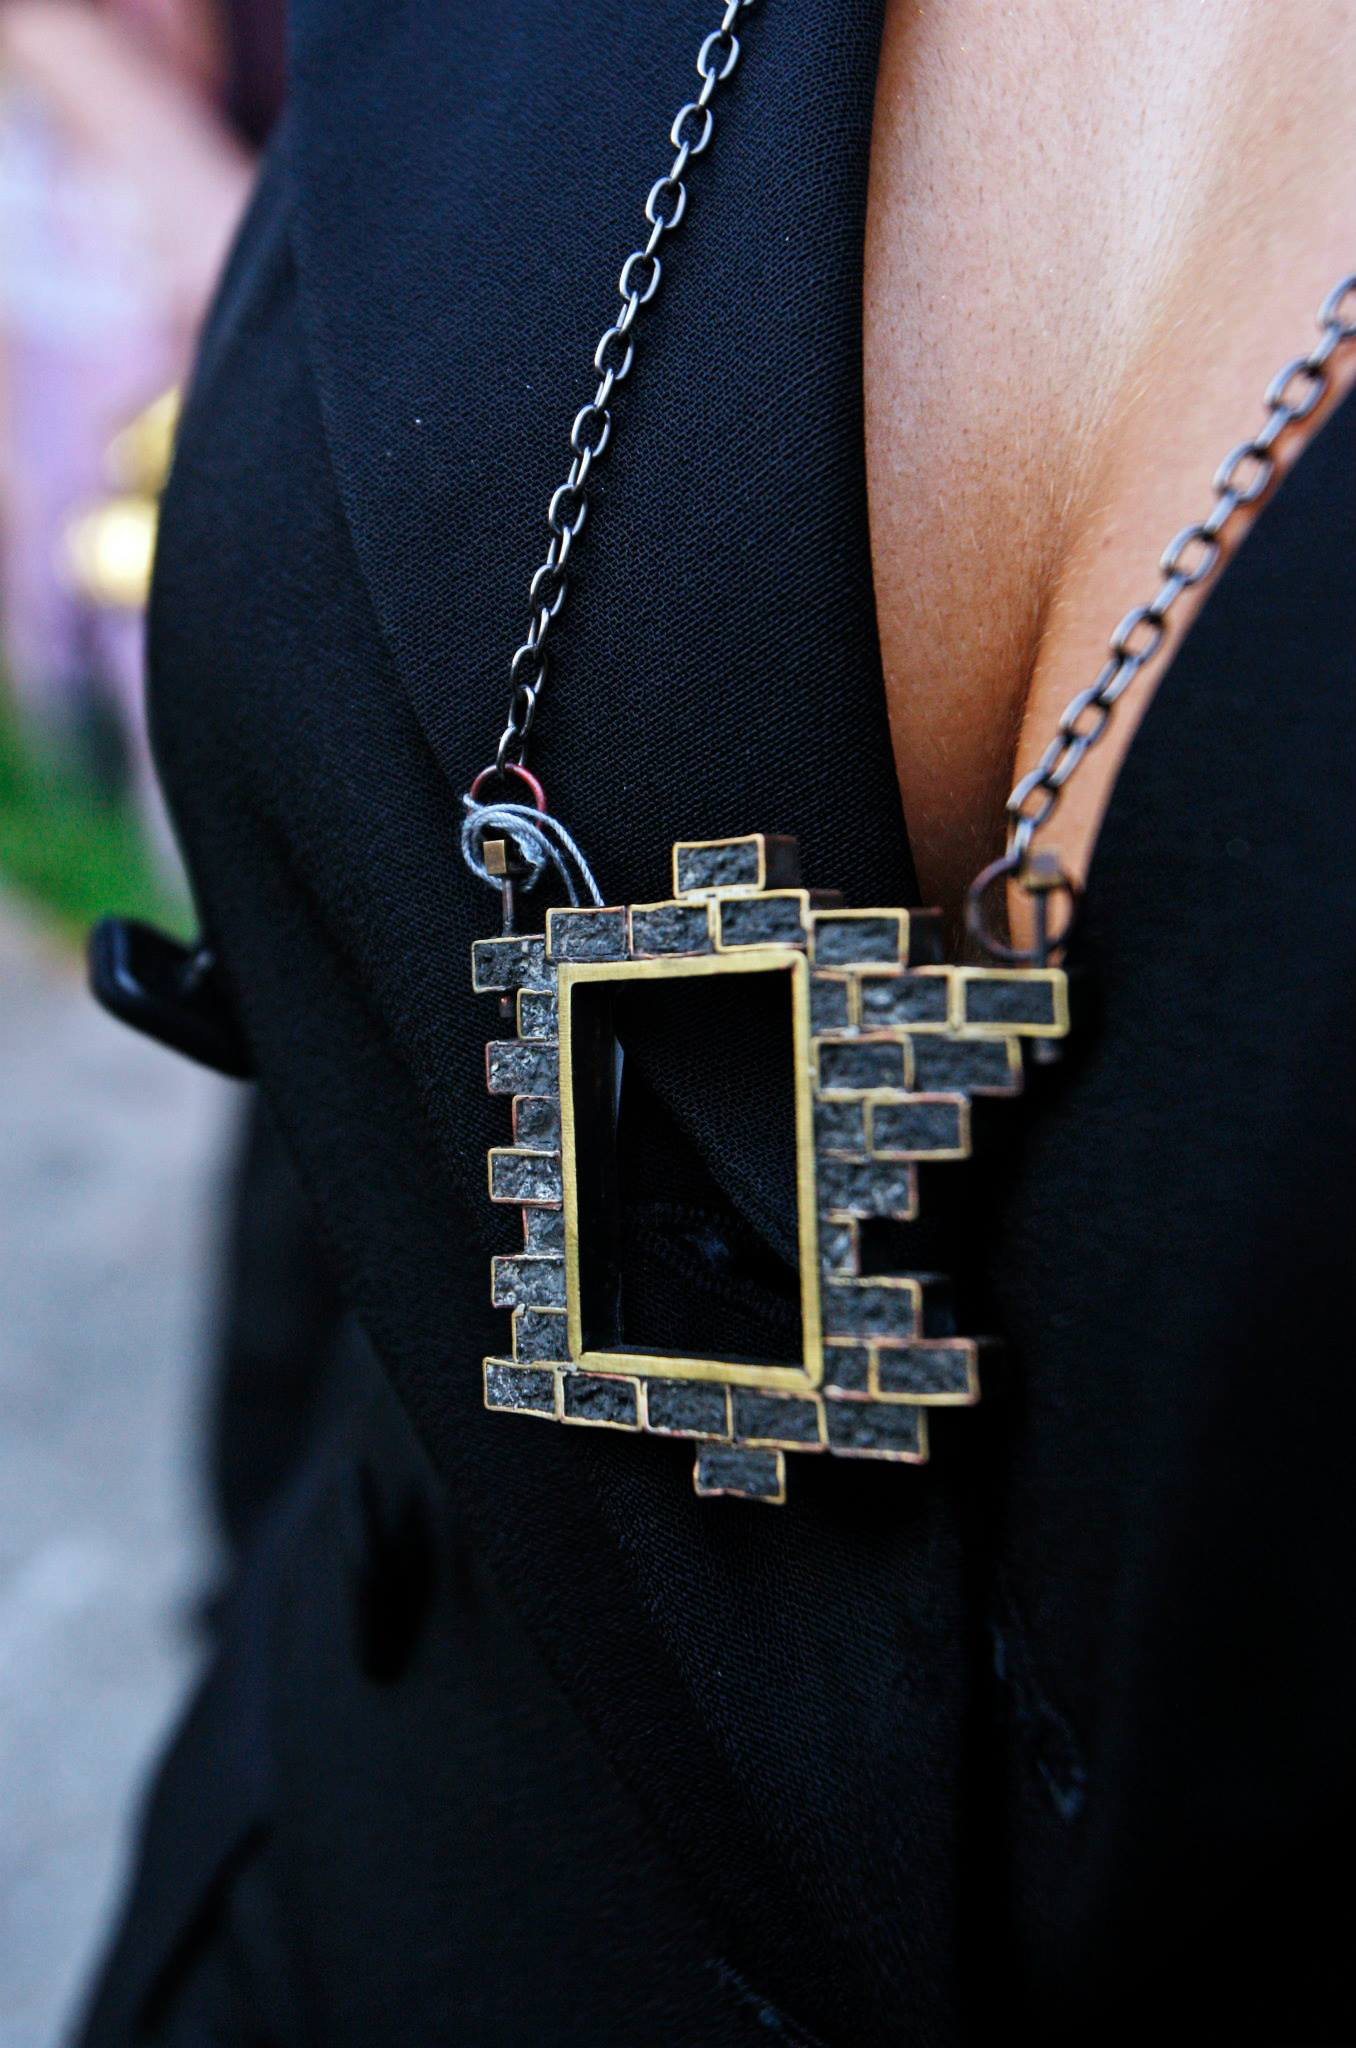 Danielle James necklace - how amazing and cool is the way she created a brick window into a necklace?